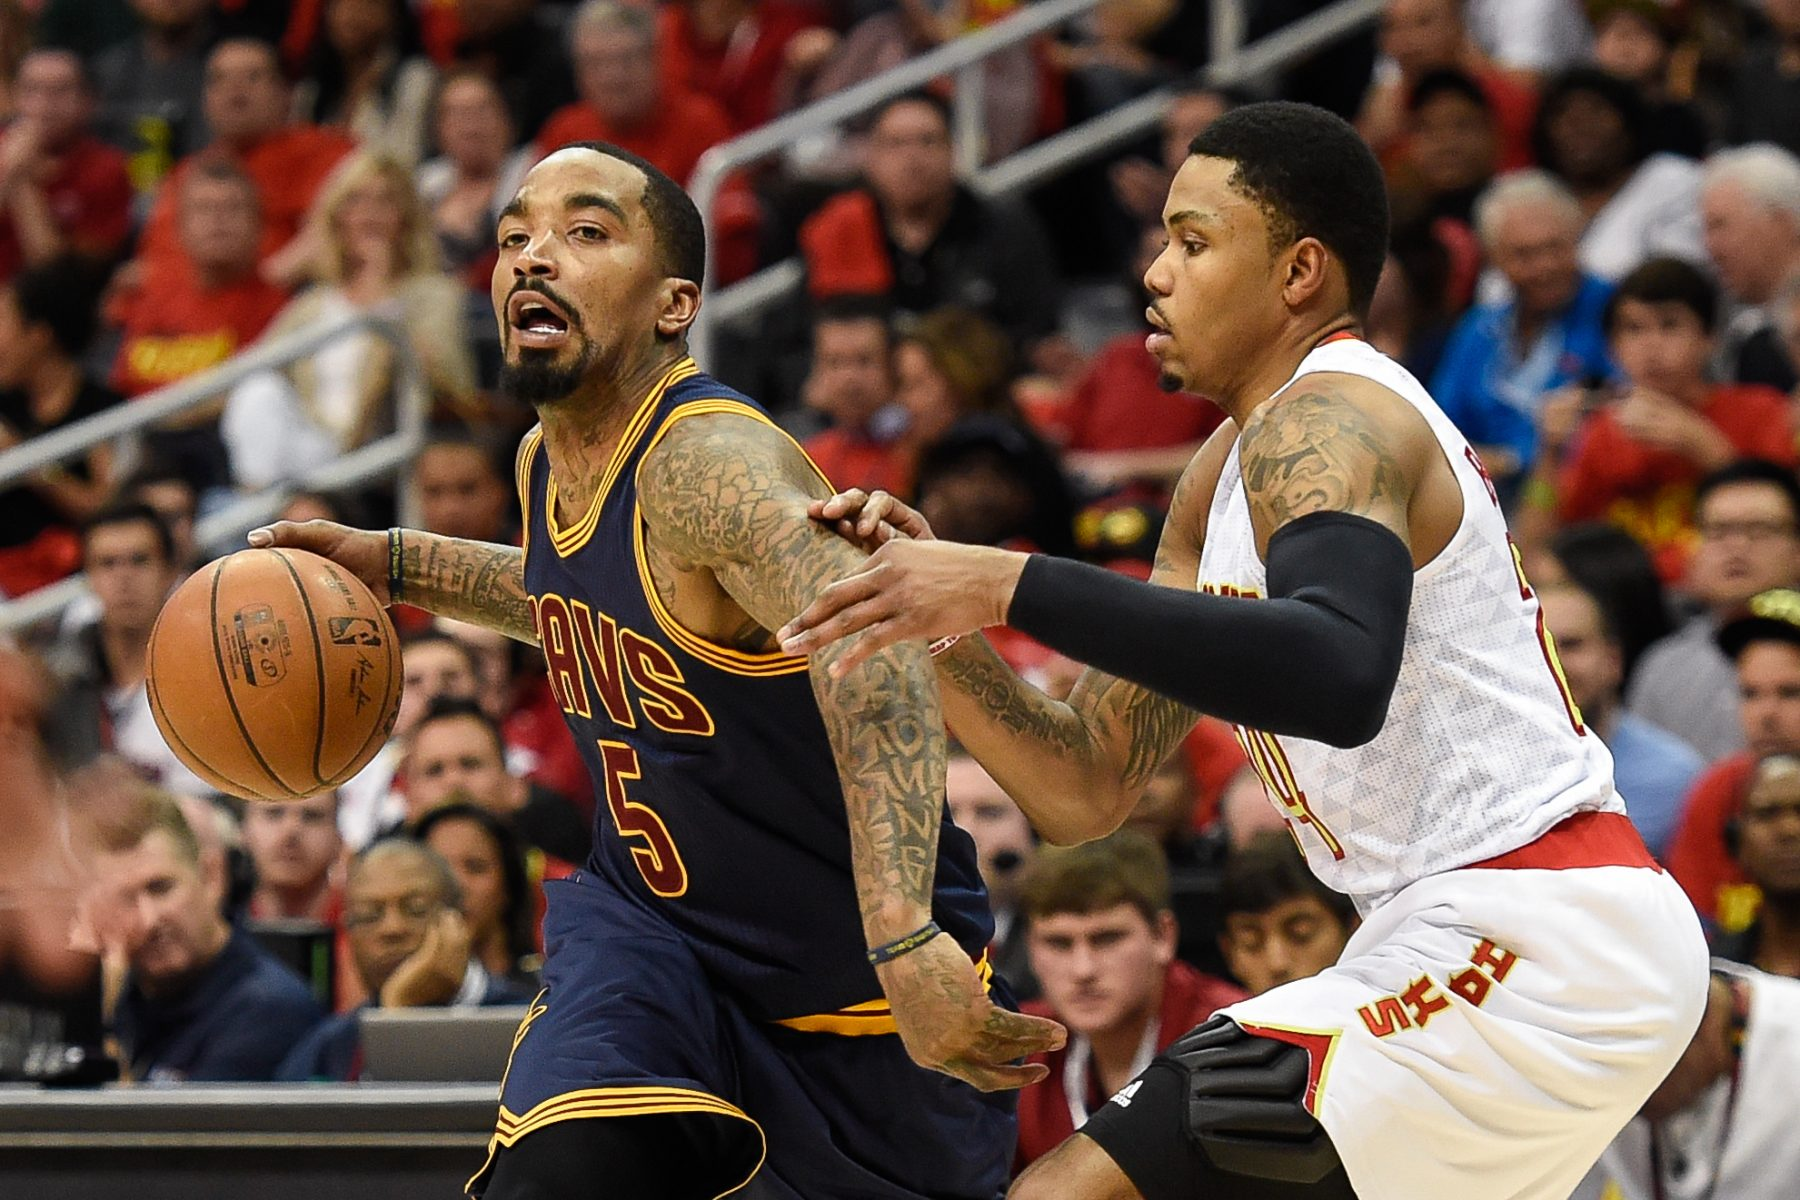 J.R. Smith and Kent Bazemore